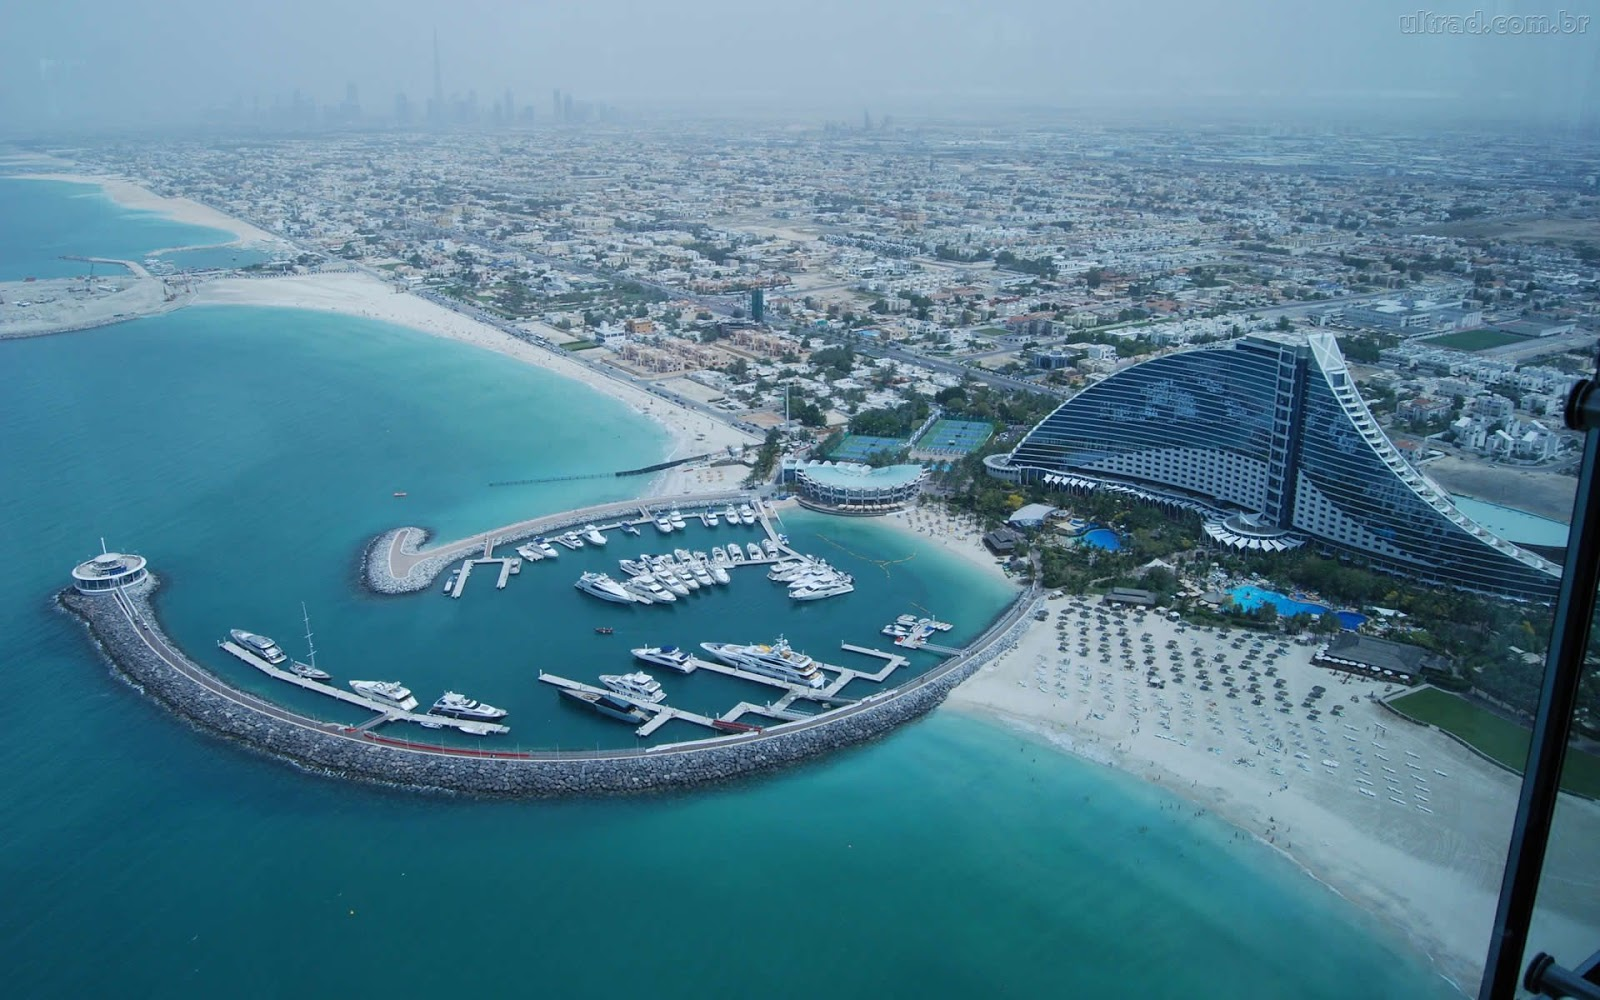 Jumeirah beach hotel dubai emirados rabes for Dubai hotels near beach